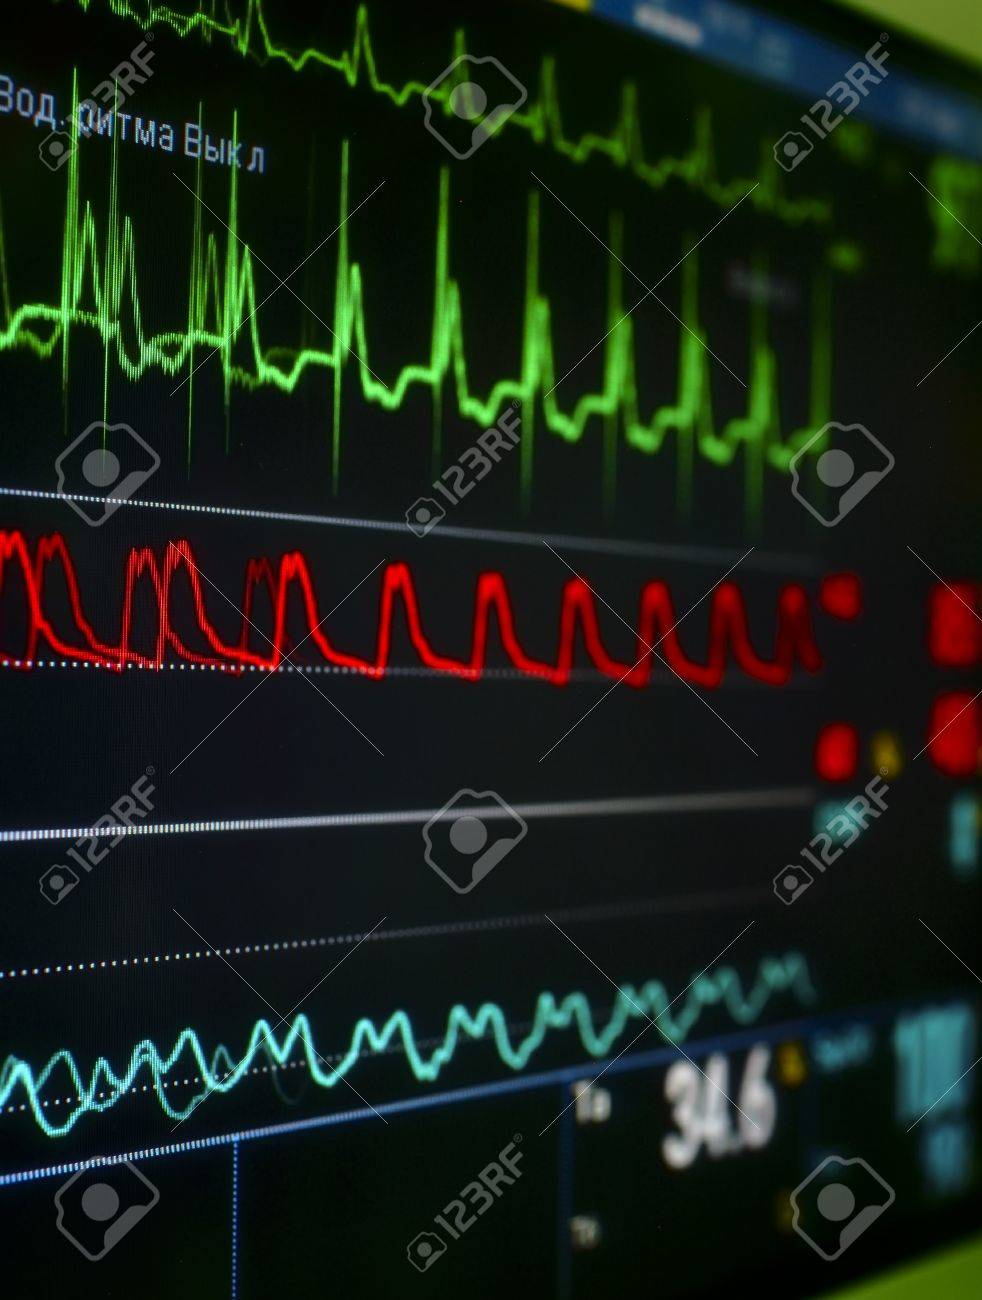 monitor in the ICU The waves of blood pressure, blood oxygen